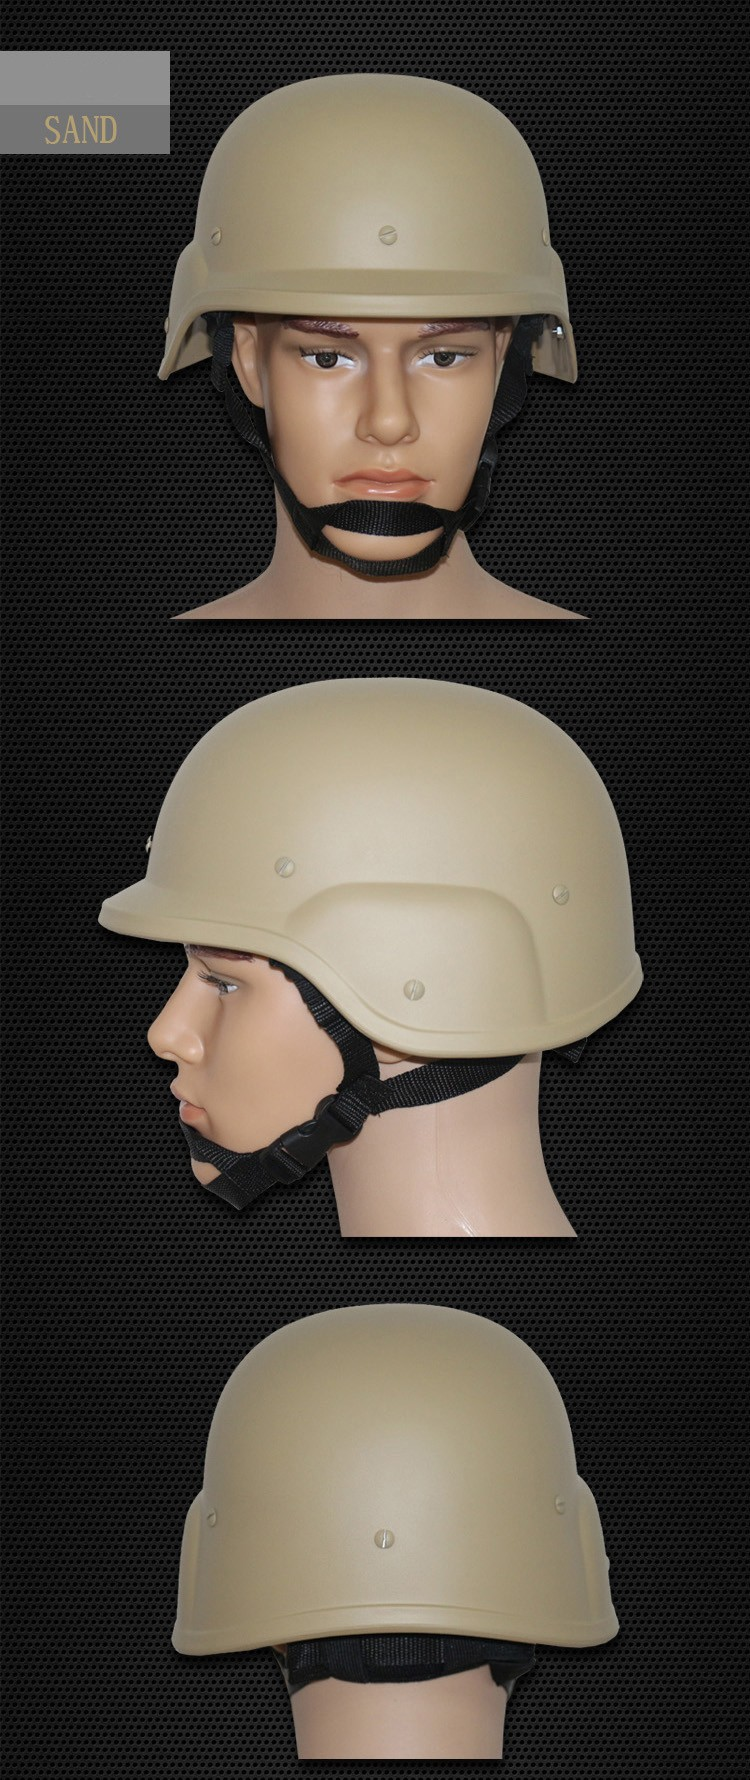 Safety Helmet Military Tactical Helmets Movies Prop Cosplay US Army Style War Game Tactical Accessories for Airsoft Paintball (5)